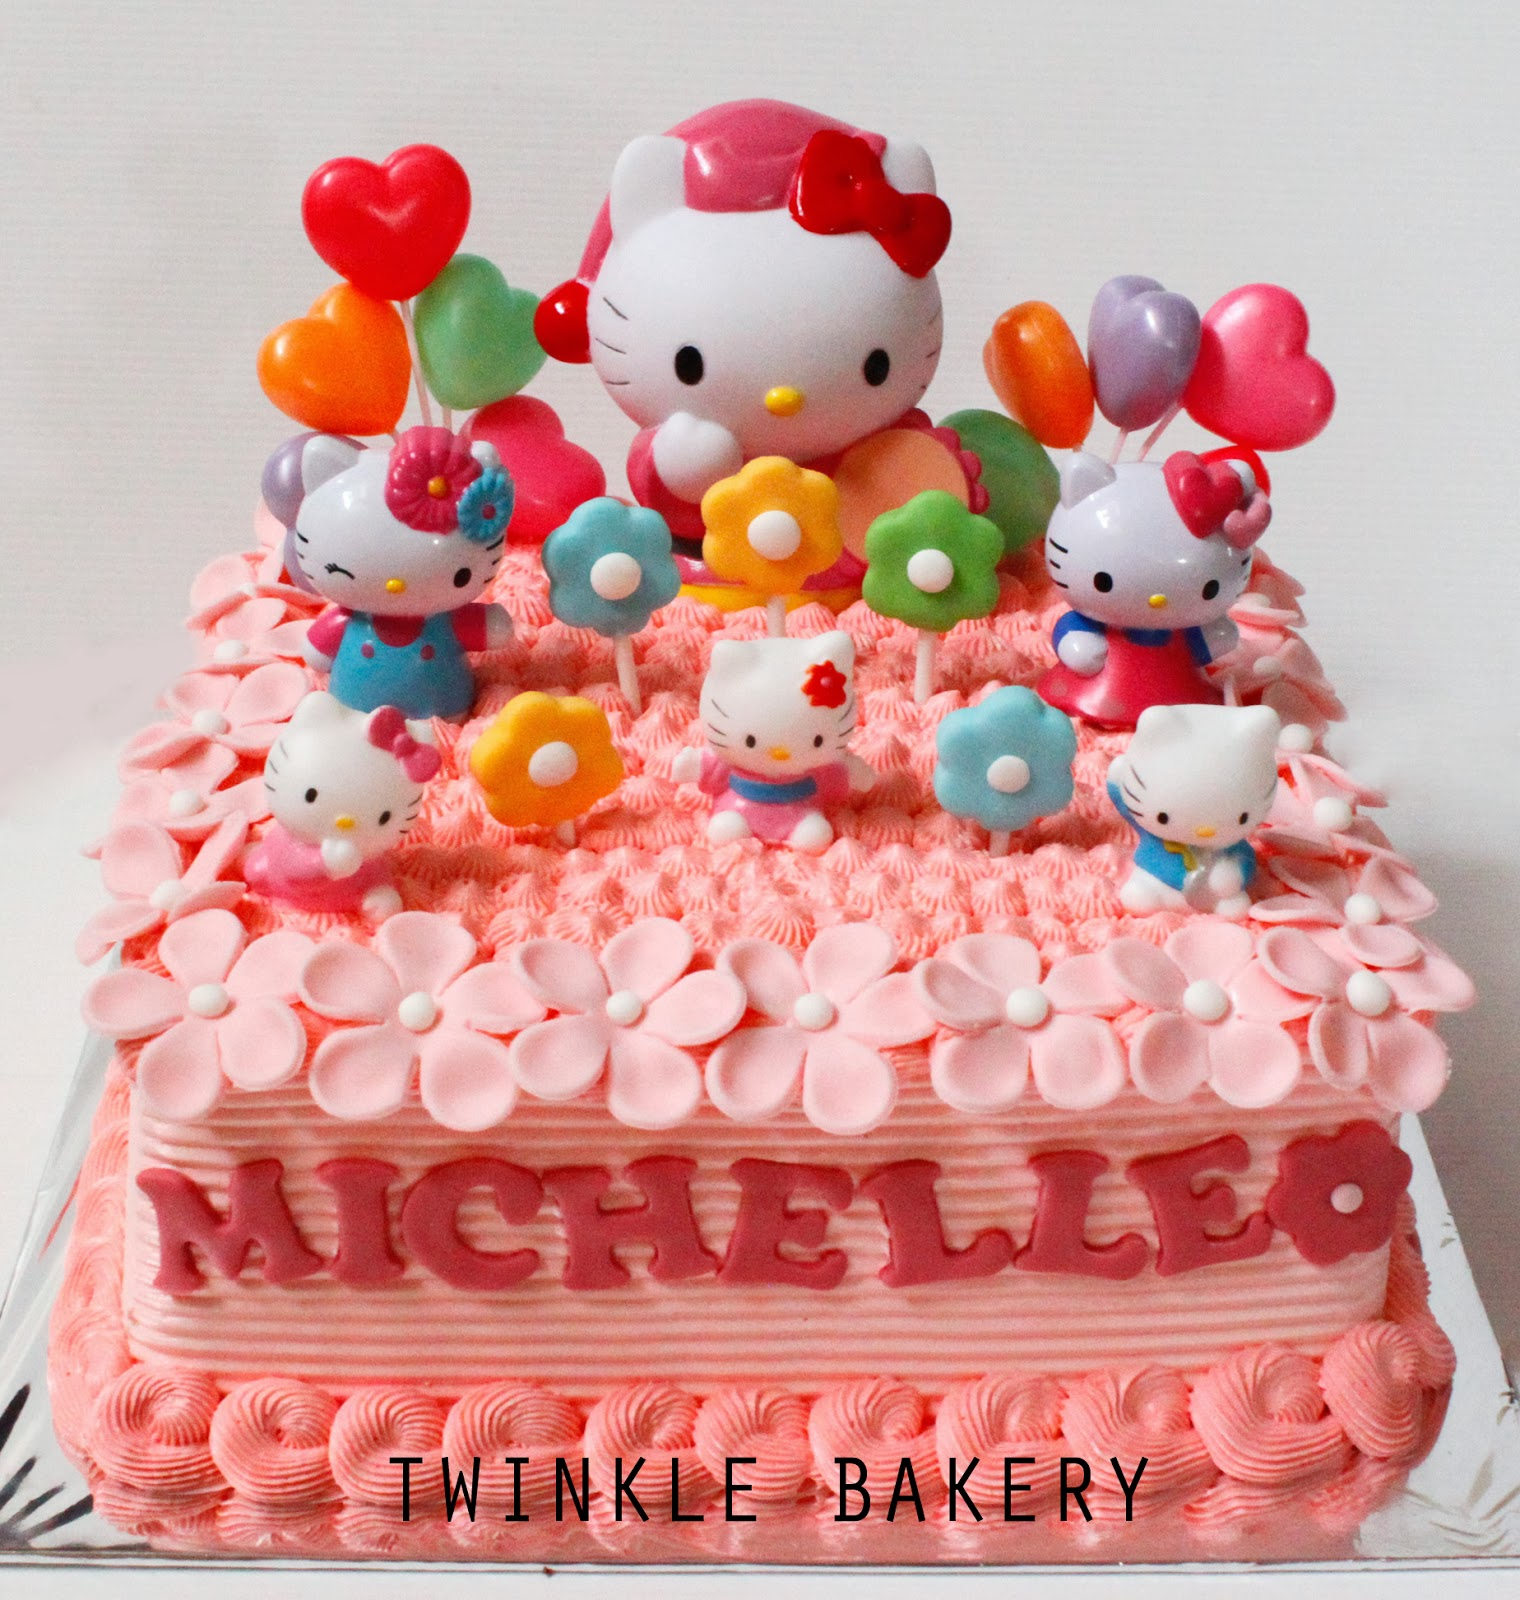 Twinkle Bakery Hellokitty